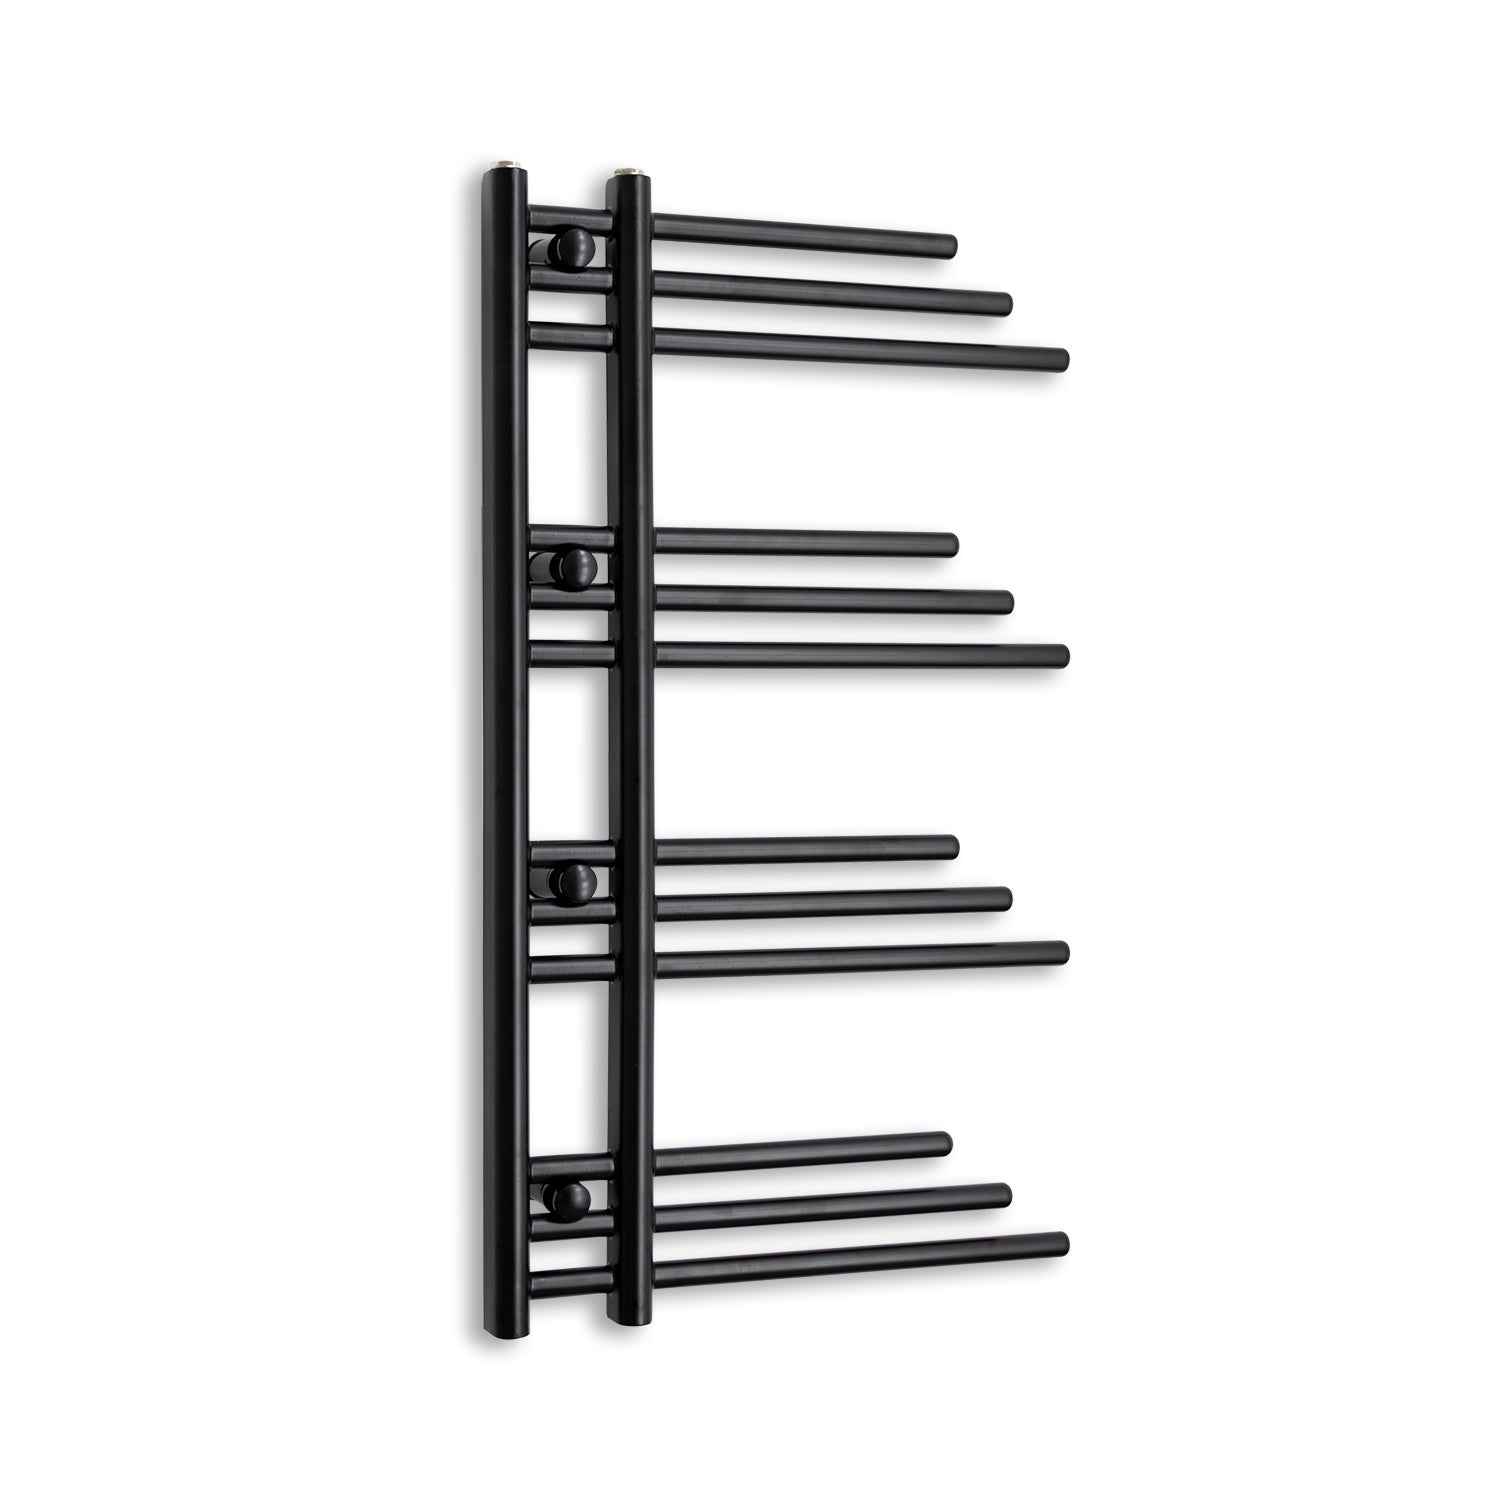 500mm x 900mm Flat Black Electric Element Towel Rail